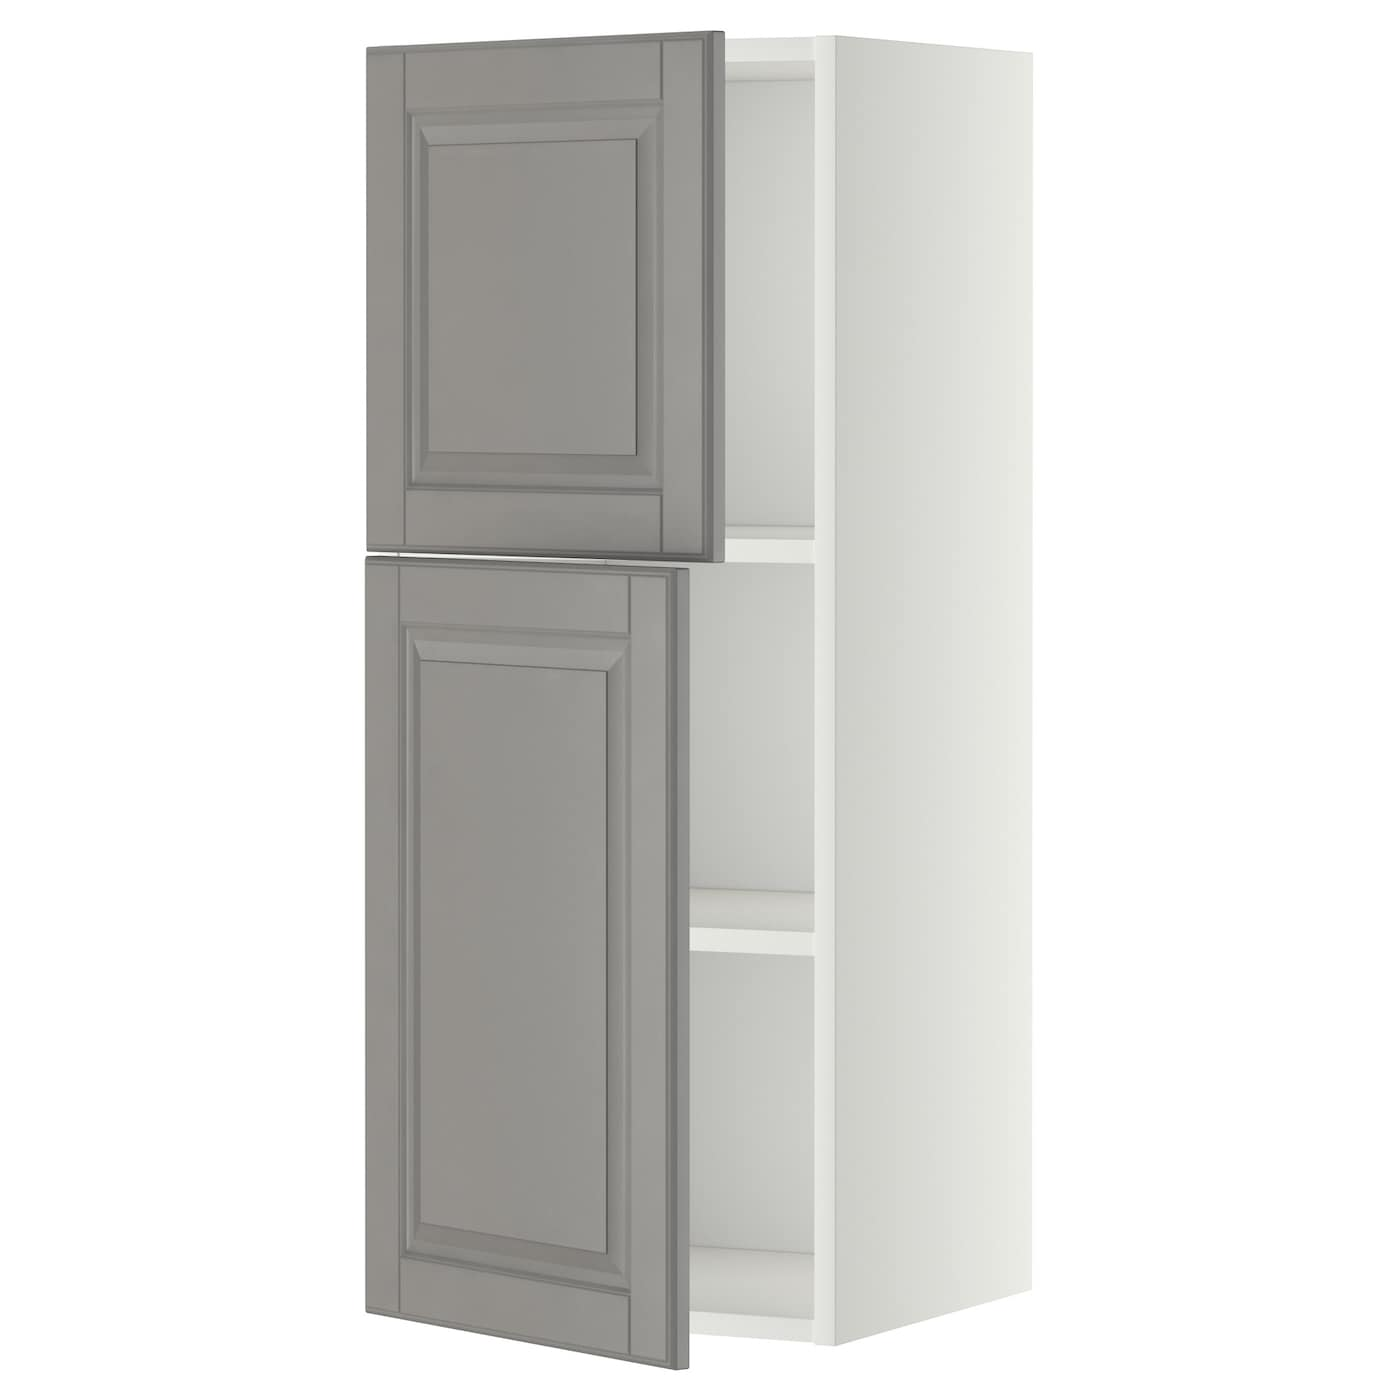 Metod Wall Cabinet With Shelves 2 Doors White Bodbyn Grey 40x100 Cm Ikea